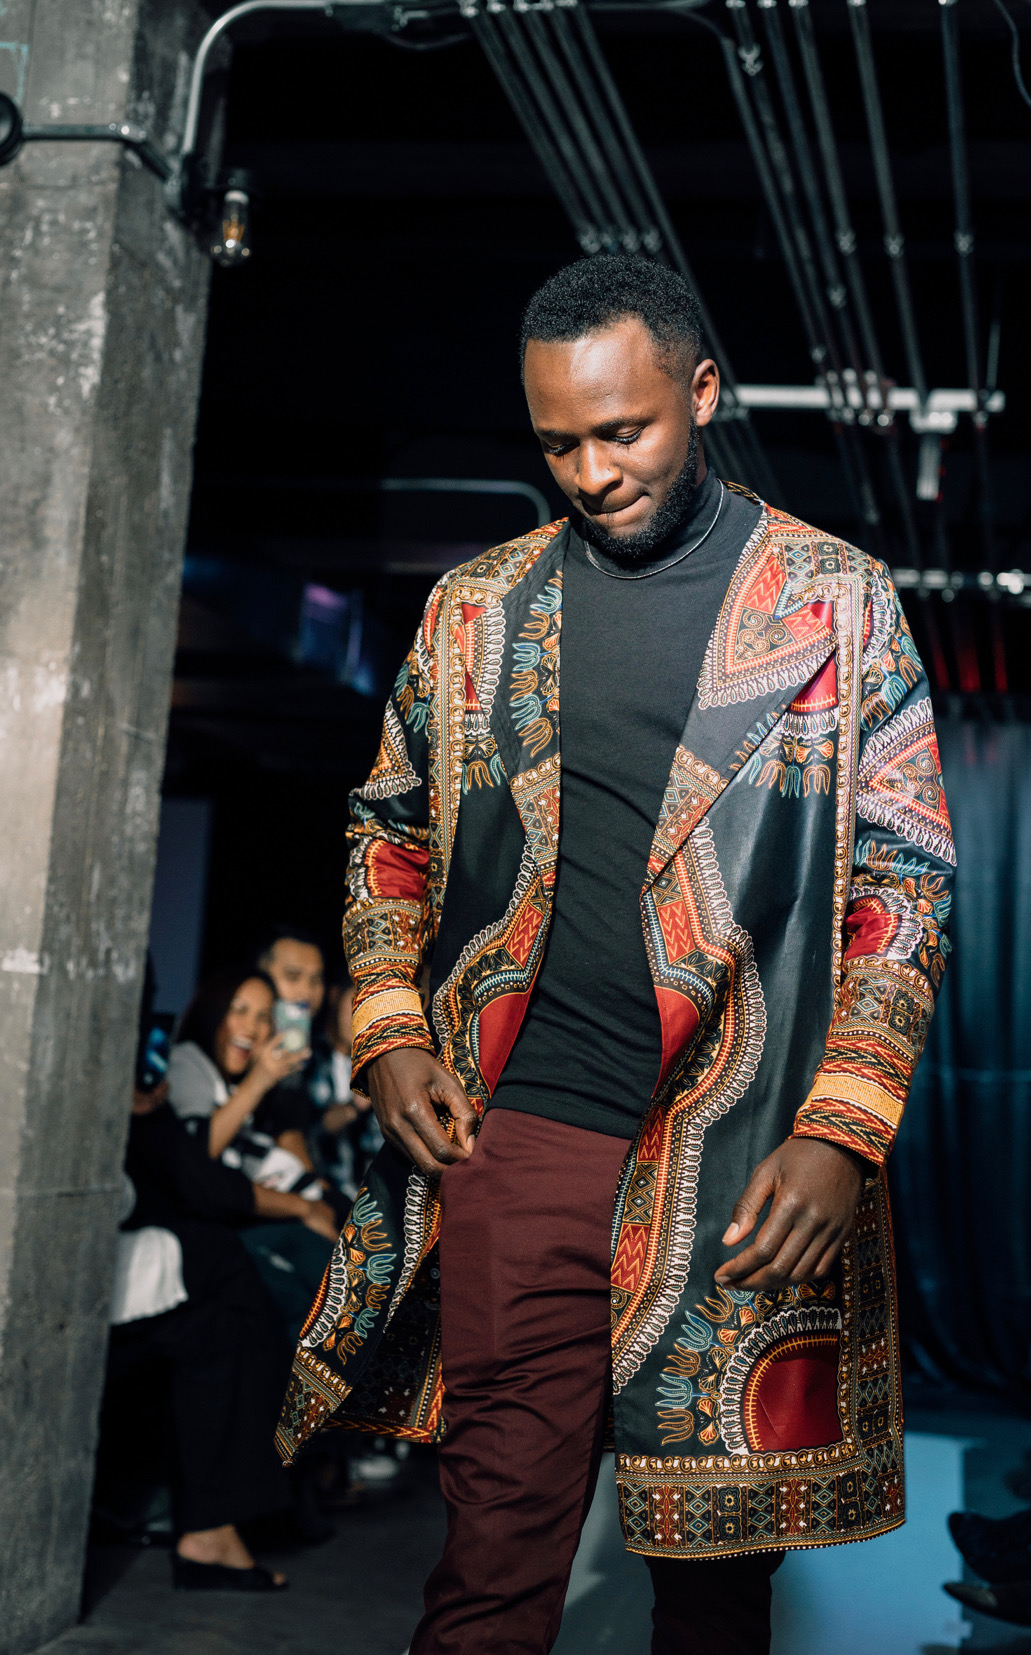 """ Sensation"" look 5 - DASHIKI COATBring out your inner African King with our custom-made African print long coat for menCan be worn for different occasions like weddings, dinner, prom & African themed eventsModeled by Ugandan model Peter KyosabaIG : @hunk__z"